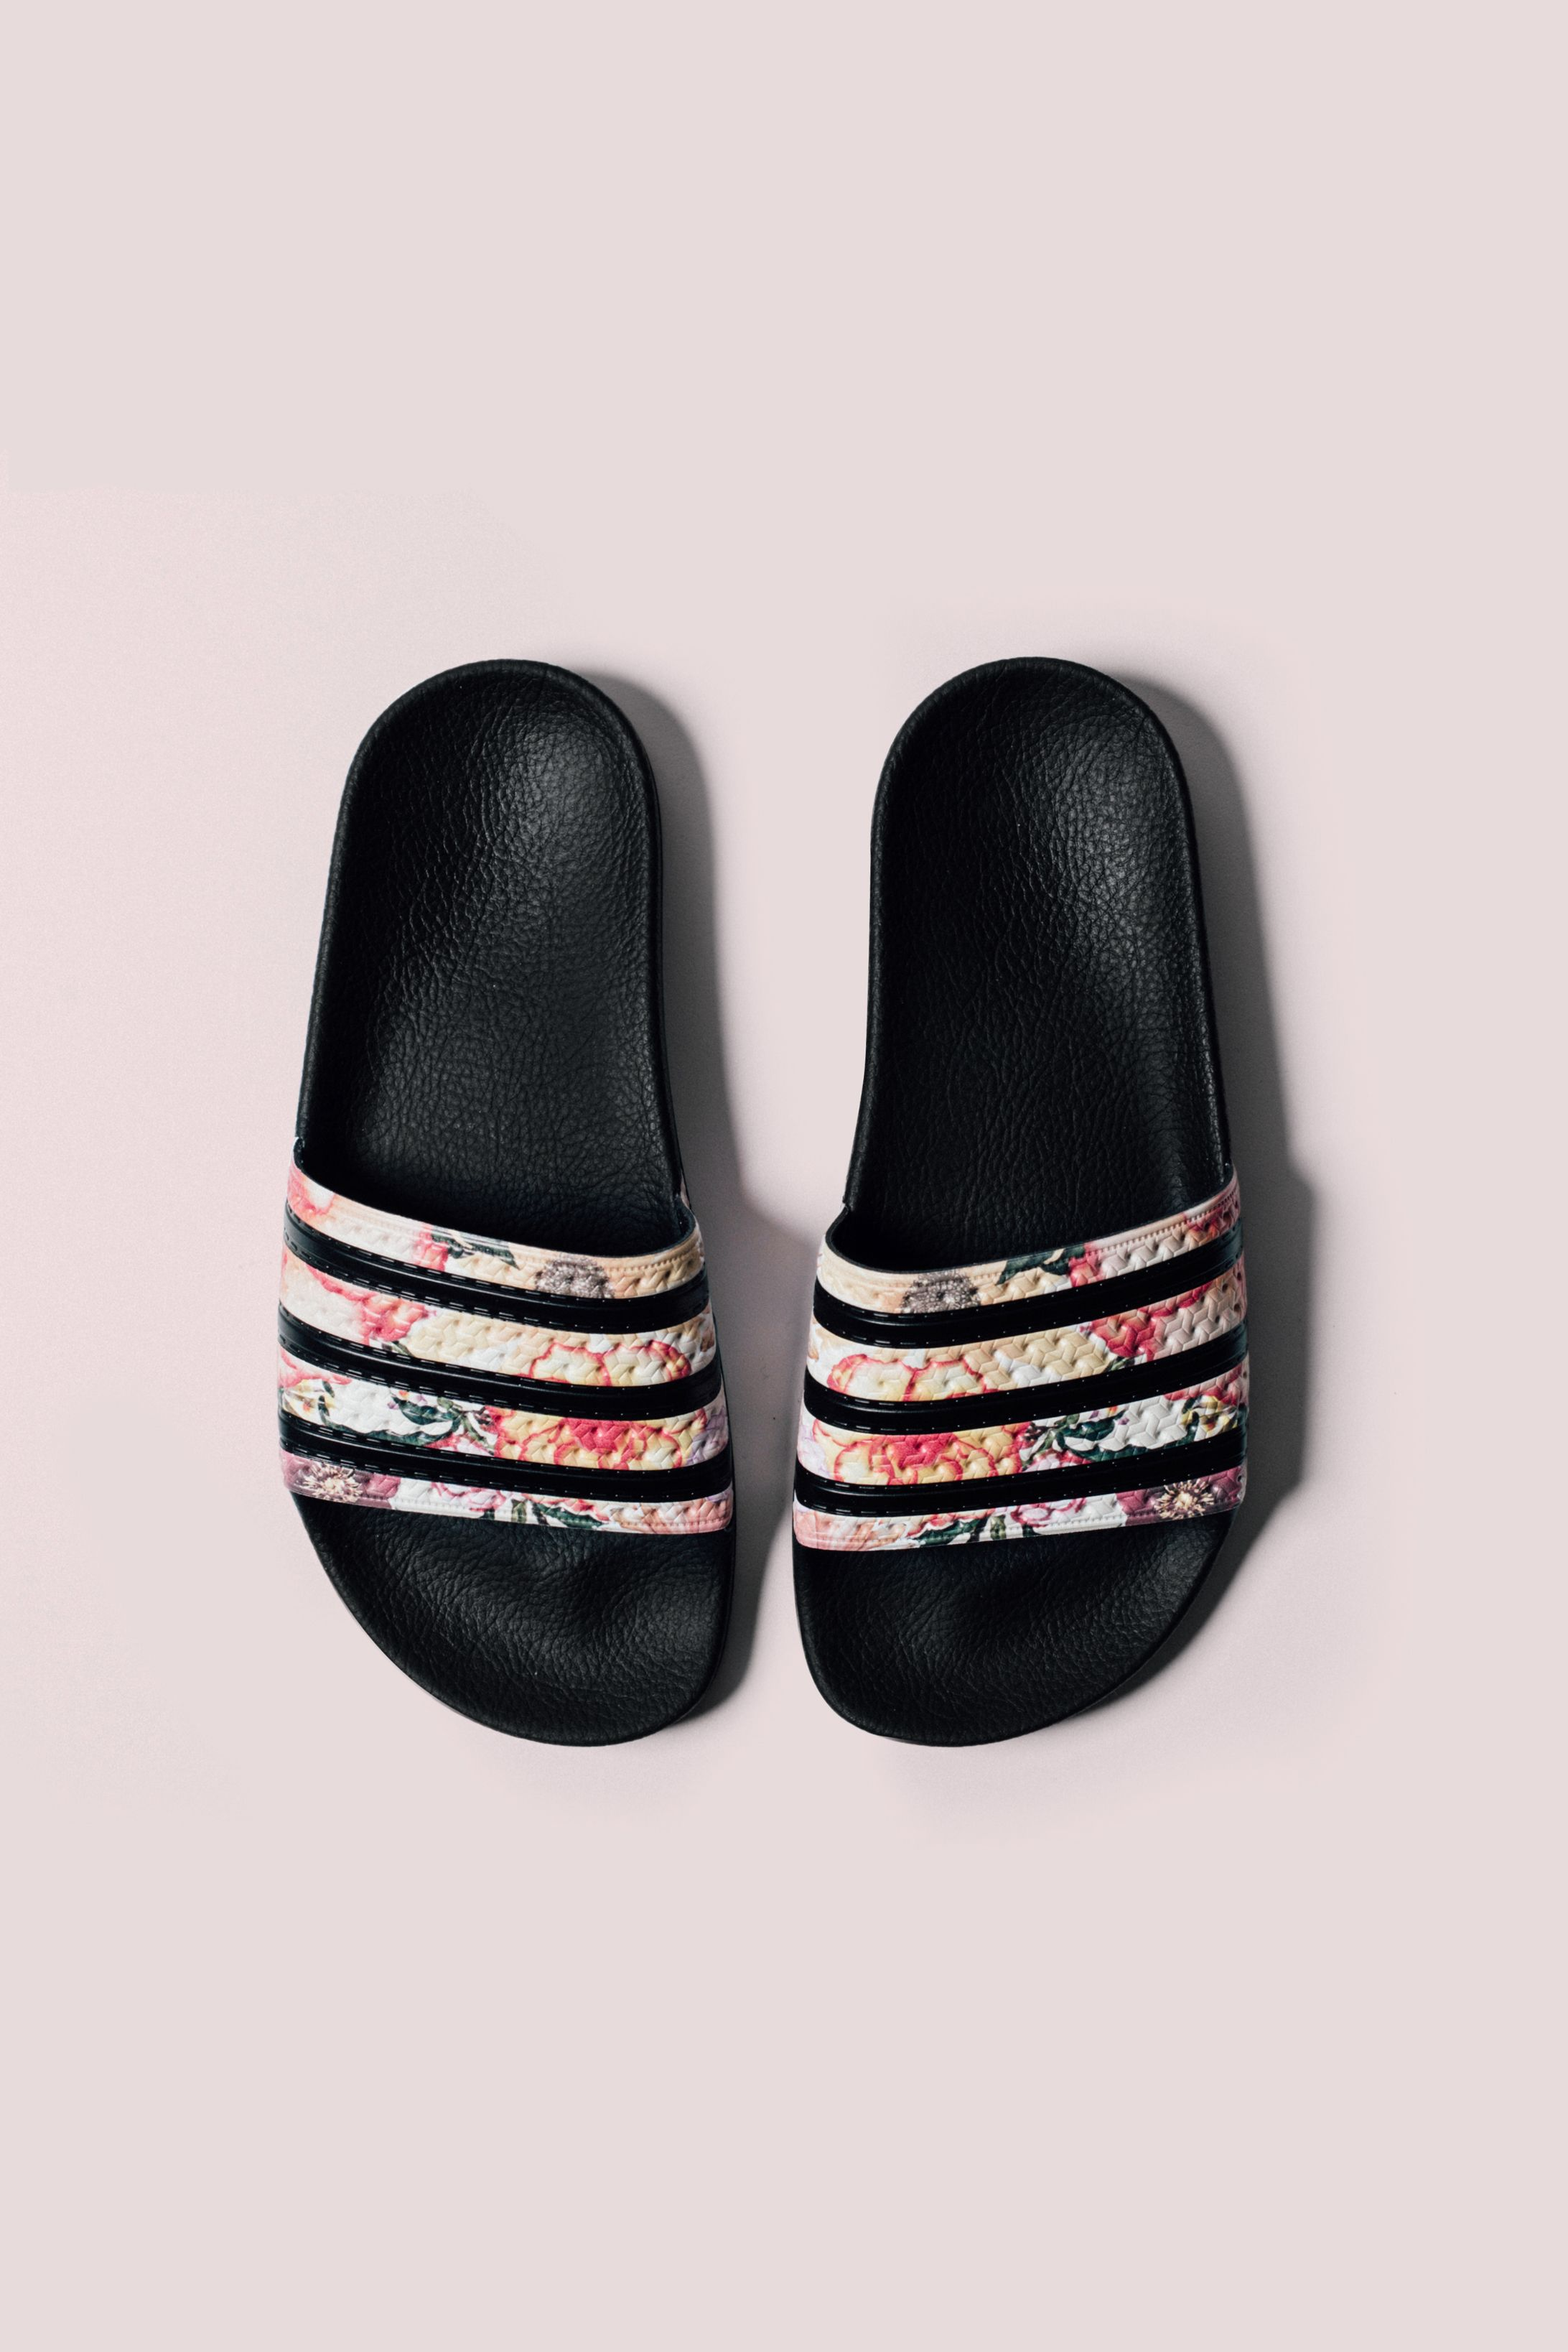 dab6bd2f9d912 Adidas Originals x Farm Women s Adilette Slides  Adidas  Adilette  SlipOns   Sandals  Fashion  Streetwear  Style  Urban  Lookbook  Photography  Footwear  ...